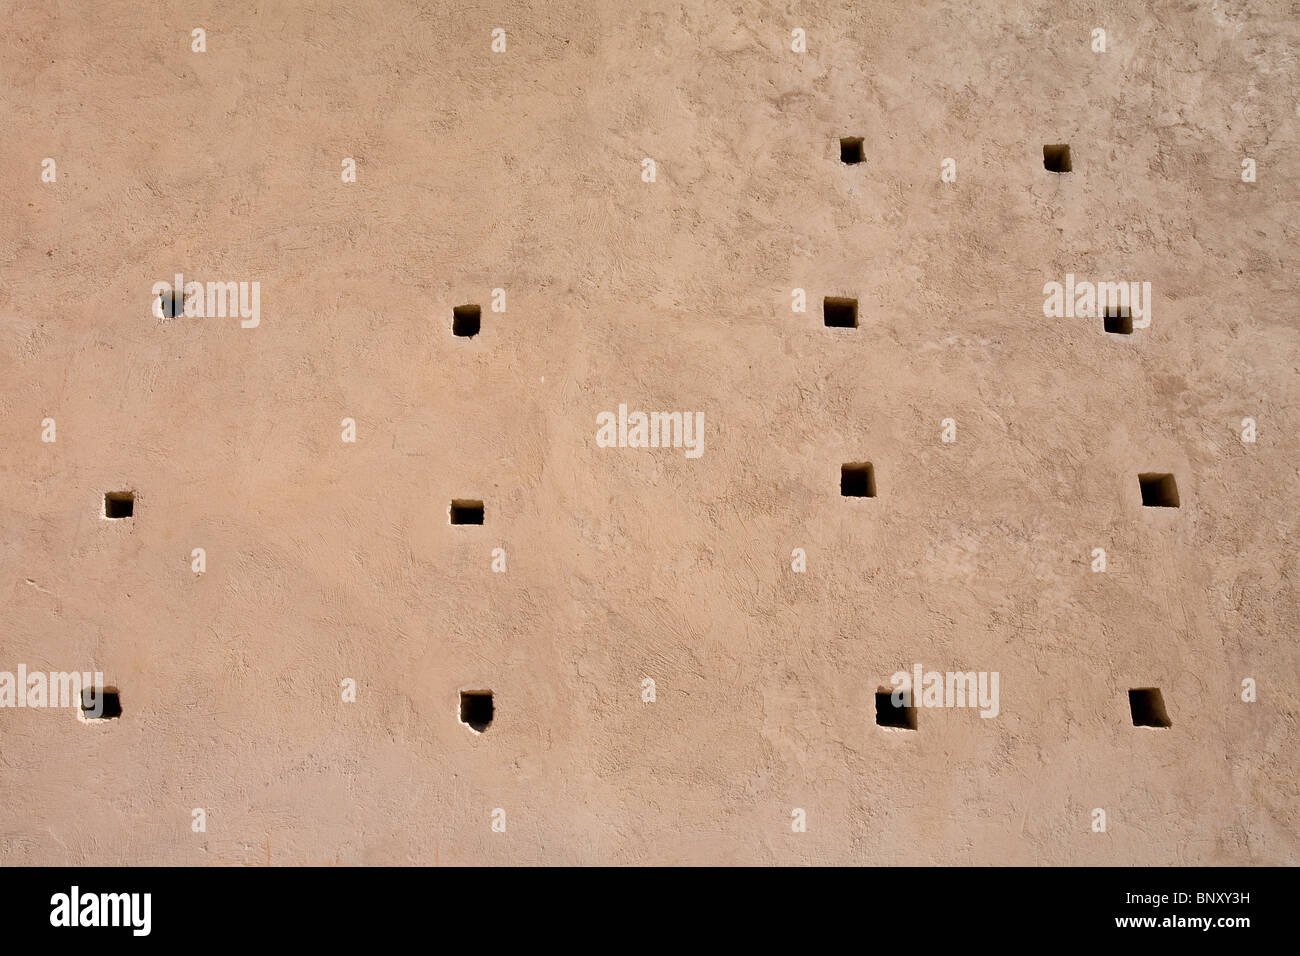 Tin Mal mosque, Morocco, detail of outer wall - Stock Image